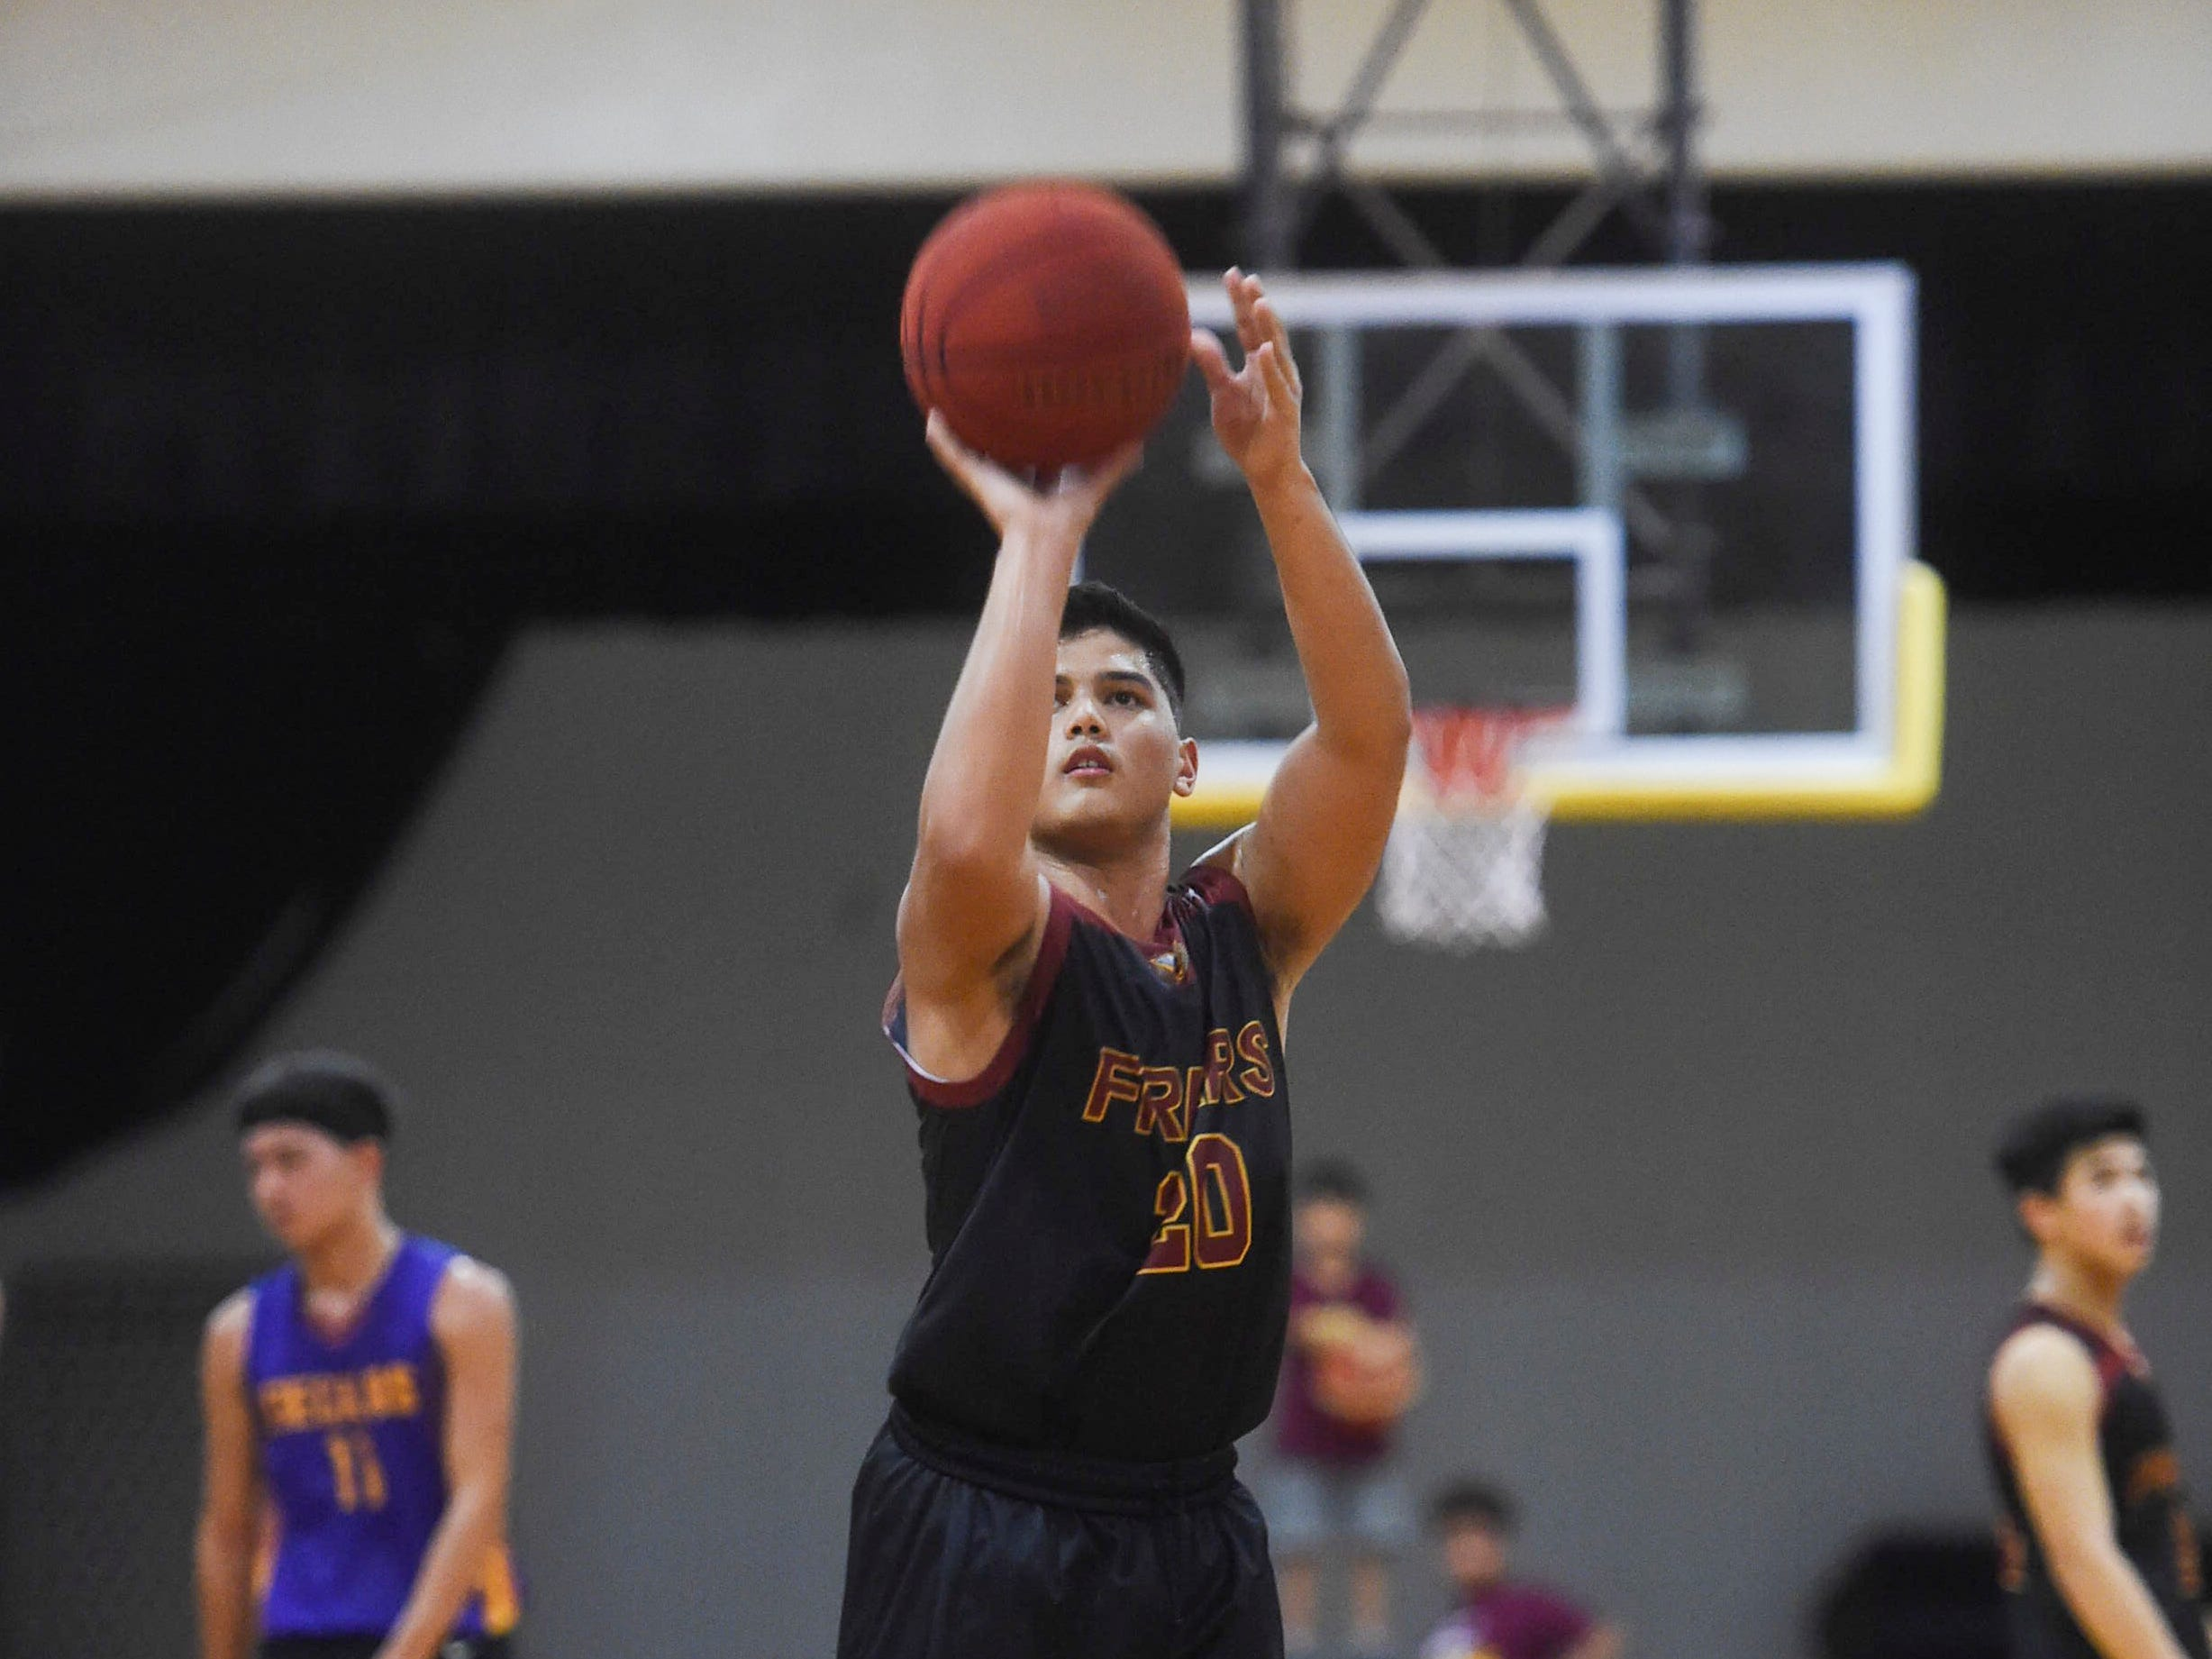 Father Duenas player Christian Taitano (20) shoots a free throw during an Independent Interscholastic Athletic Association of Guam Boys' Basketball game the home team George Washington Geckos at the GW High School gym, Jan. 19, 2019. The Friars came through with a 52-69 comeback victory over the Geckos after trailing in the first half.